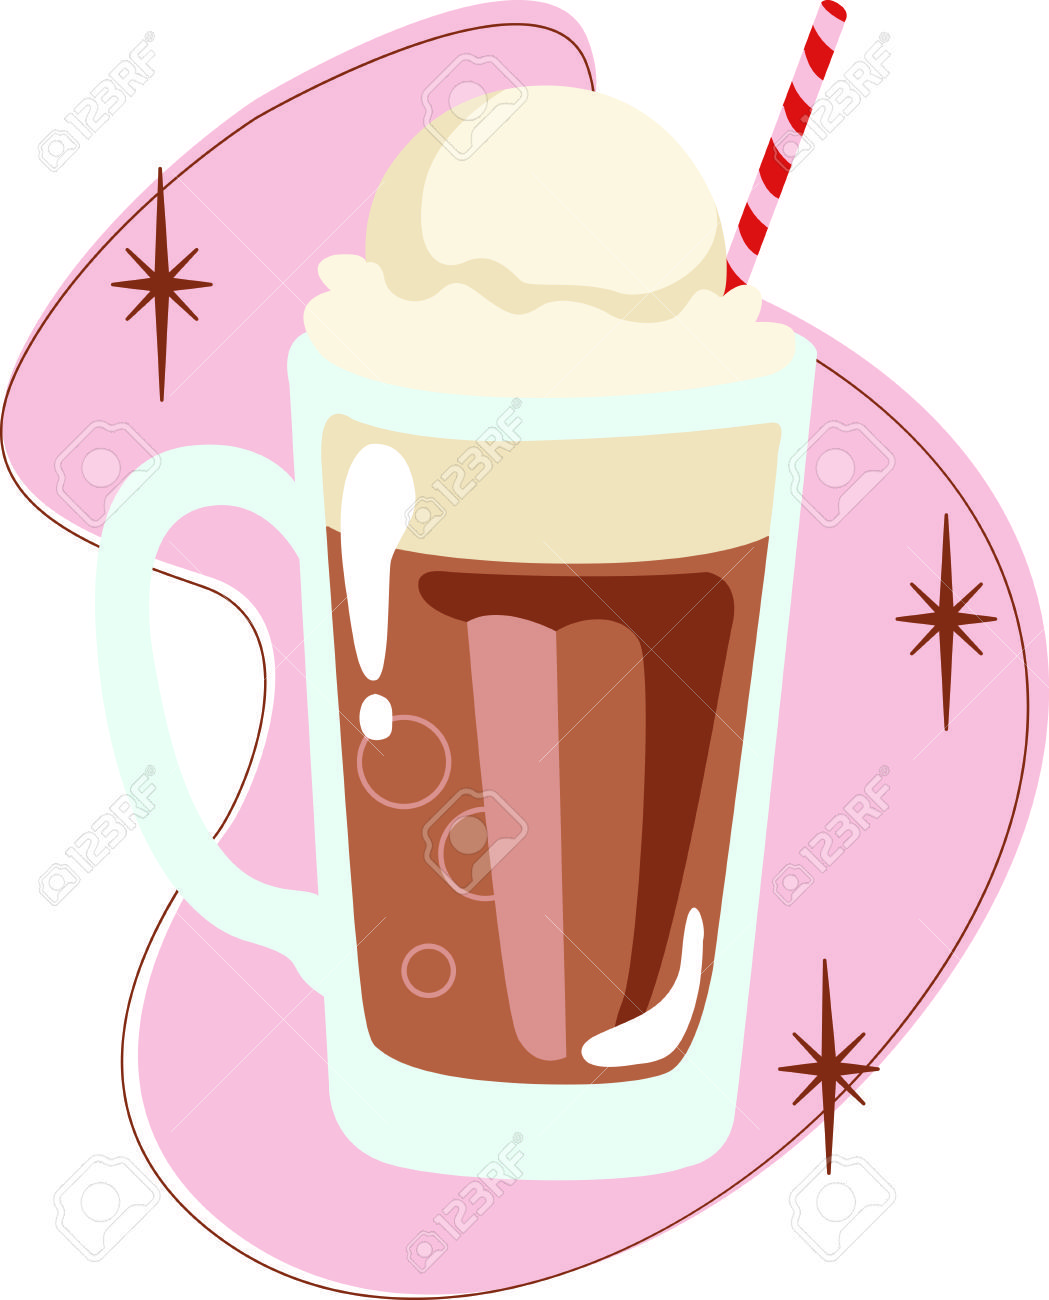 43779097-Time-to-throwback-to-the-classic-root-beer-float